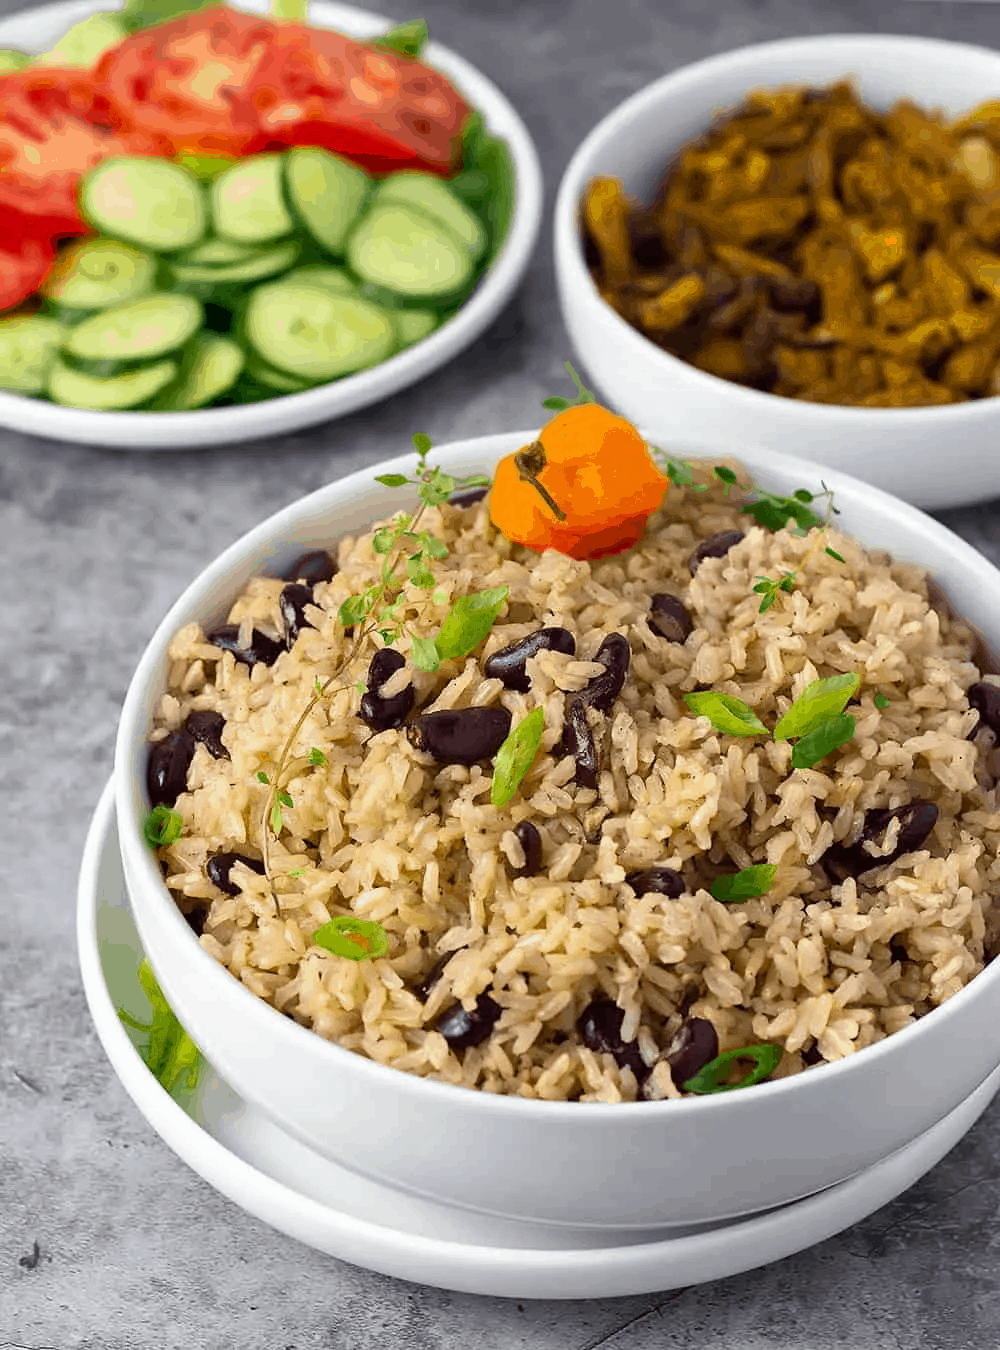 Jamaican rice and peas in a white bowl on a grey background with salad on a plate in the background